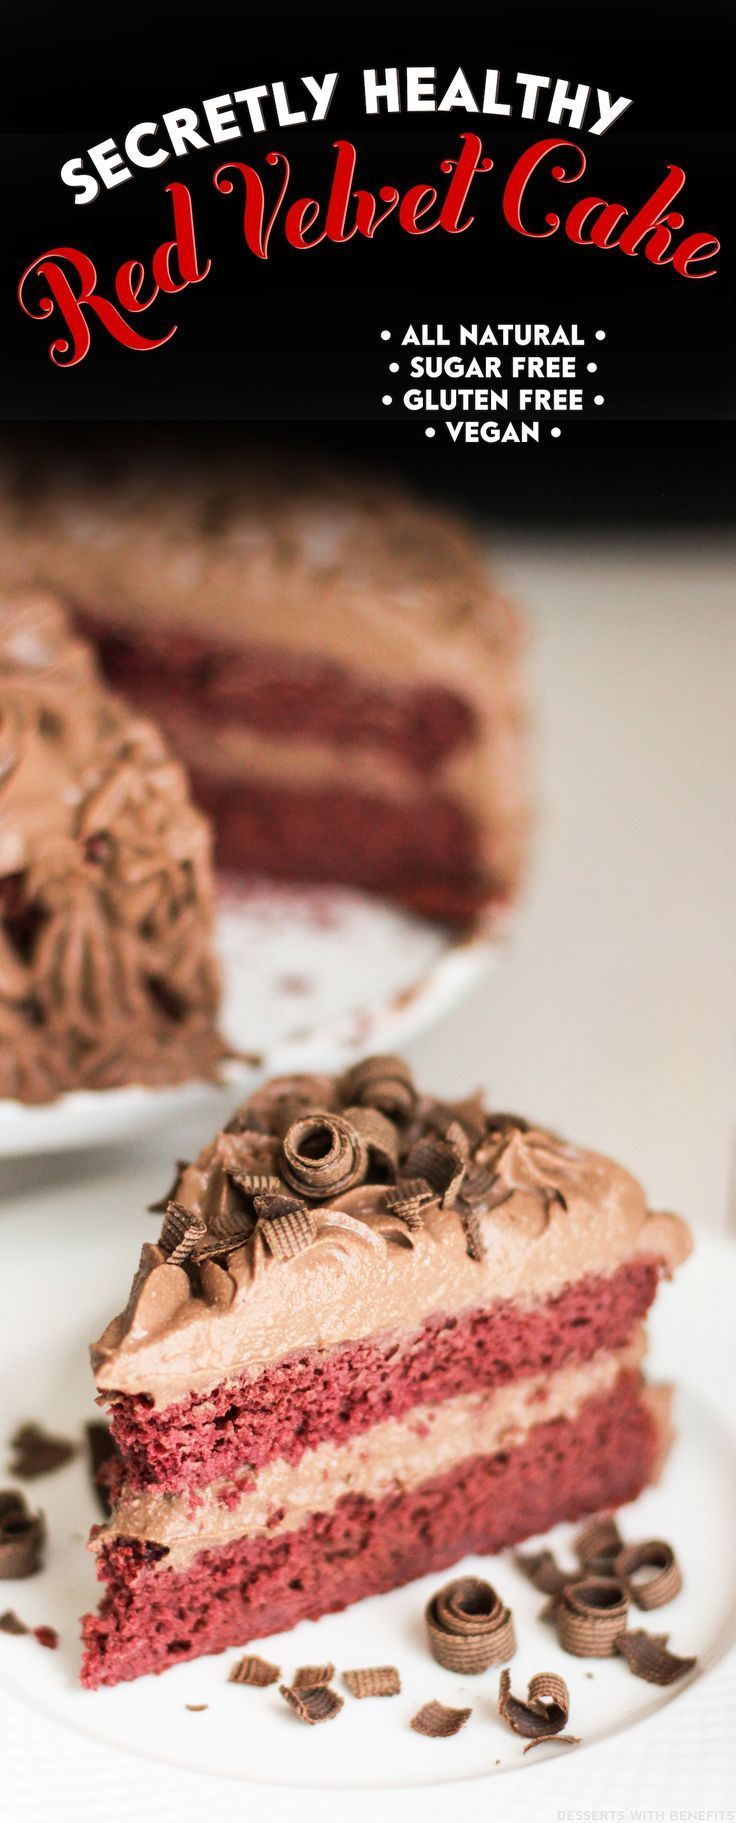 Healthy Vegan Red Velvet Cake with Chocolate Mousse Frosting!  This cake recipe is naturally red, low sugar, high protein, high fiber, whole grain, gluten free, and dairy free.  It tastes like magic.